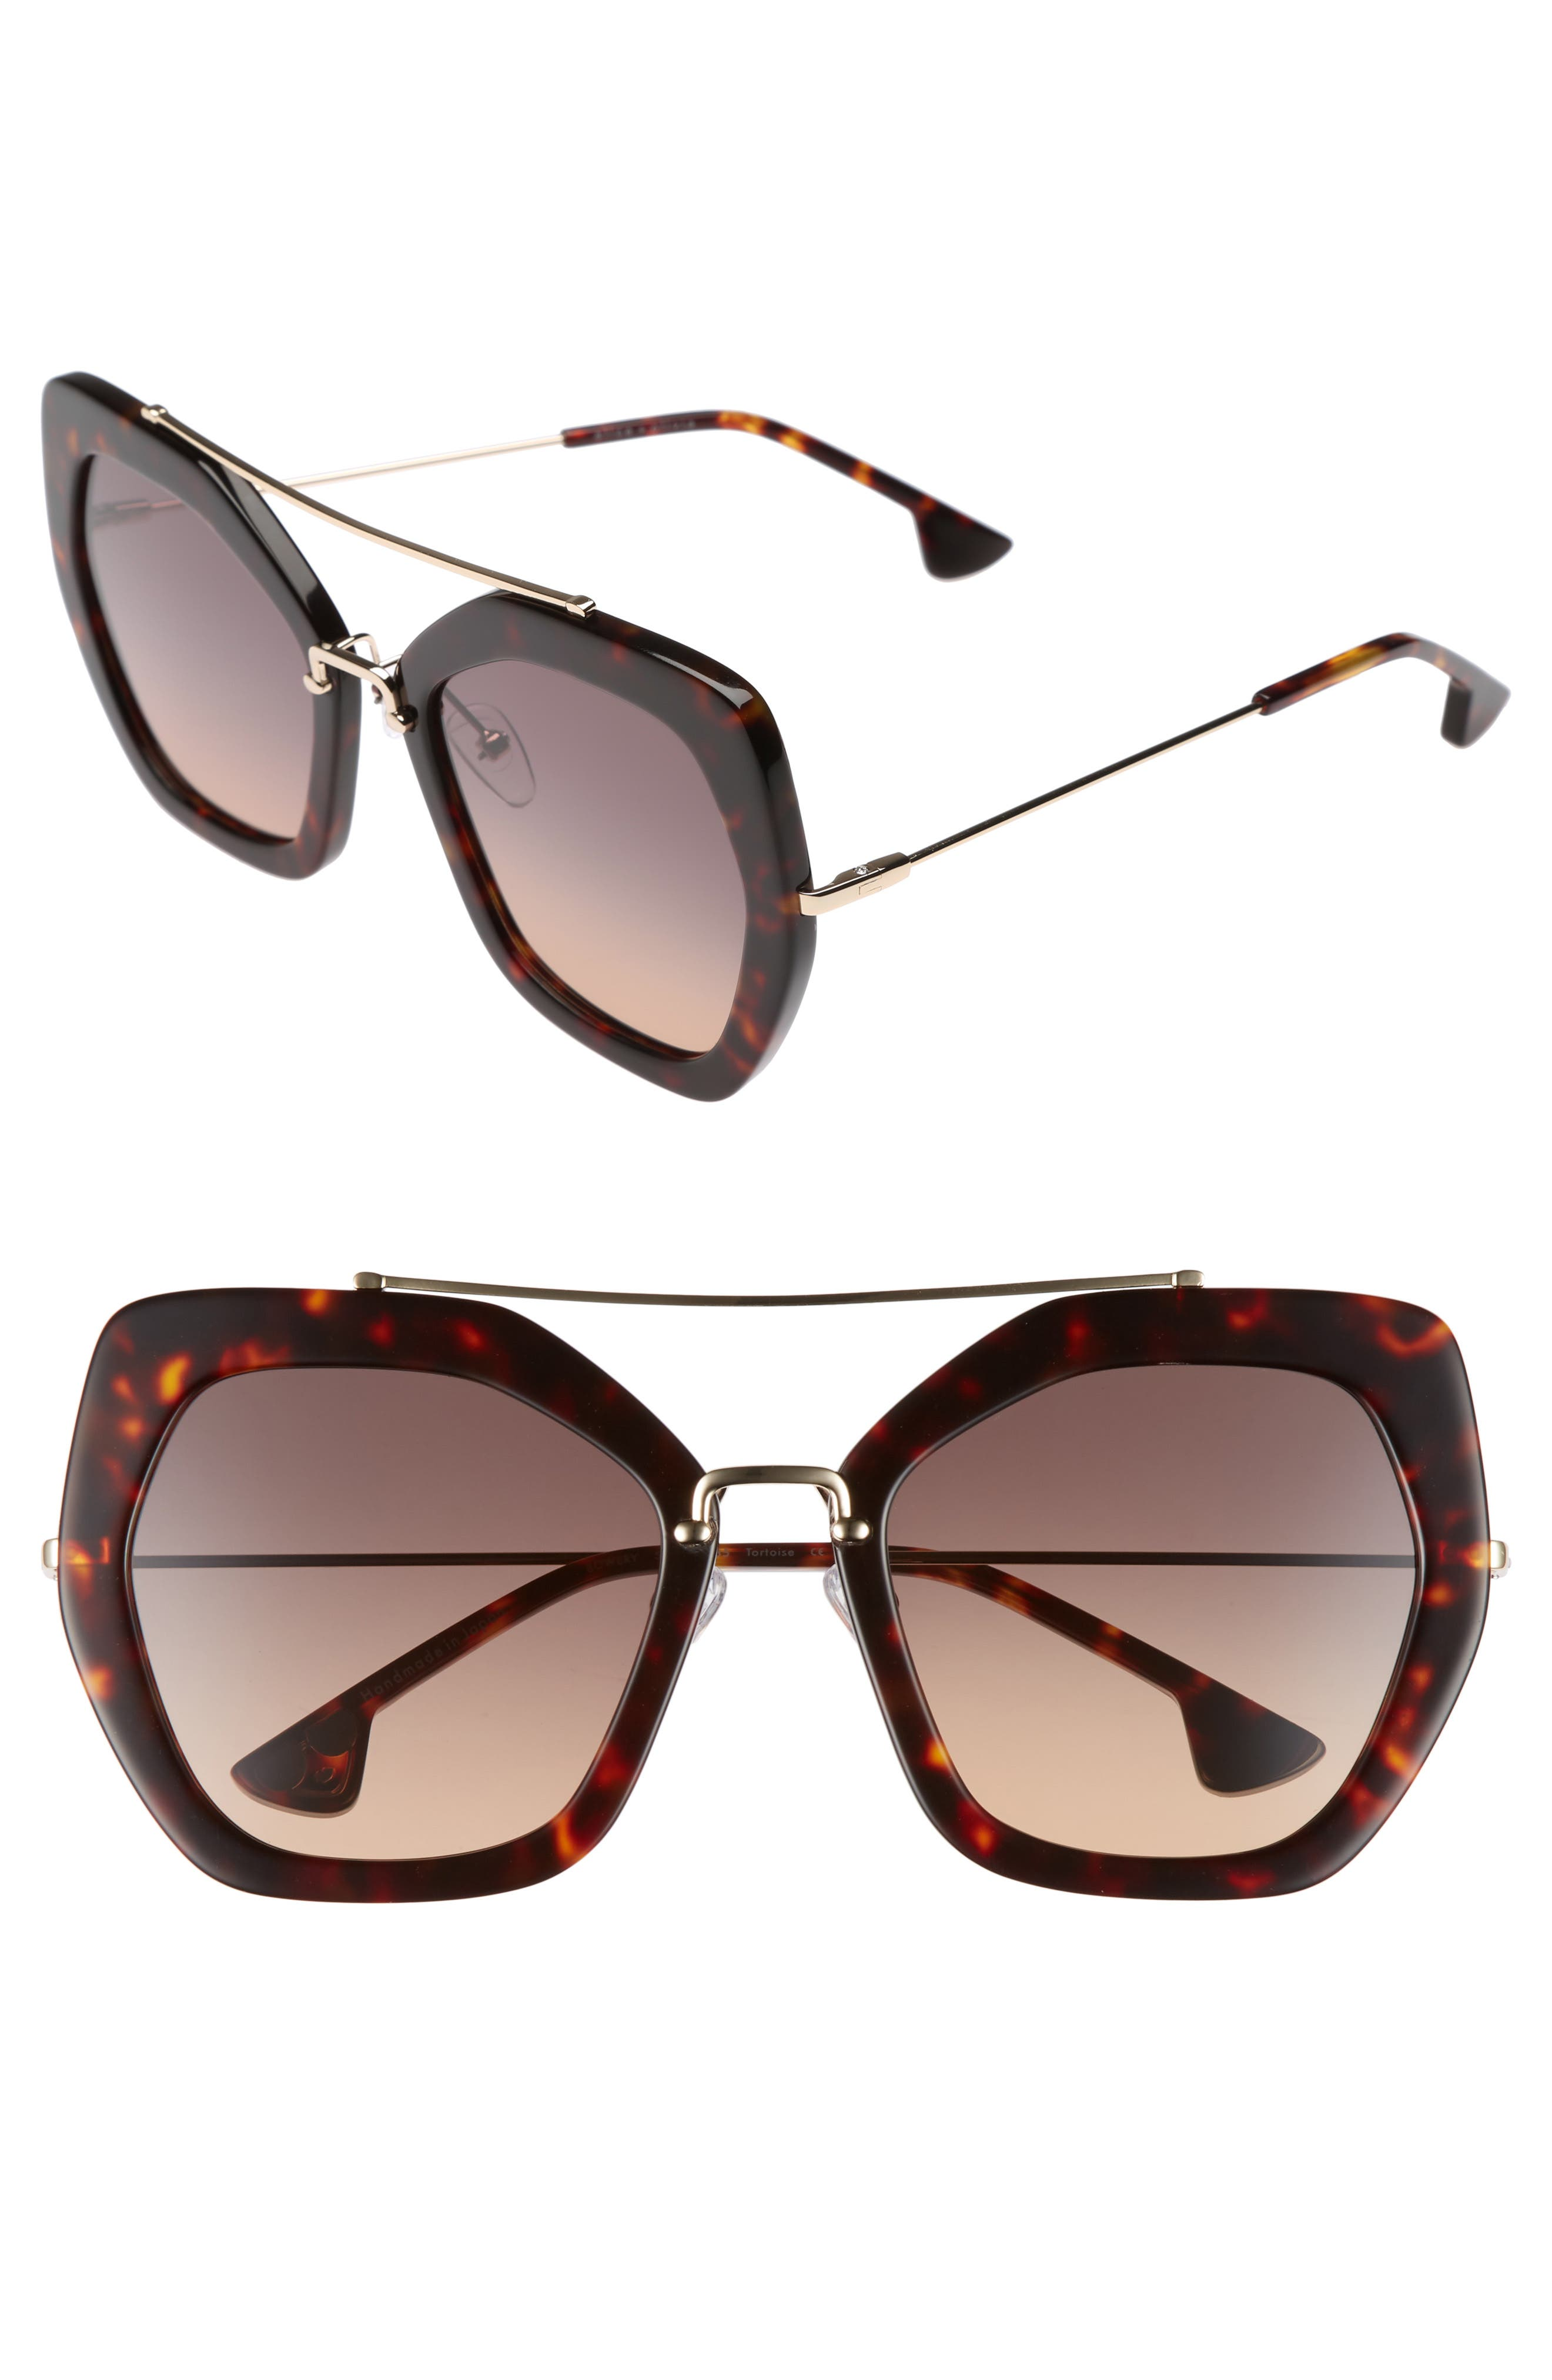 Bowery 55mm Geometric Sunglasses,                         Main,                         color, 200